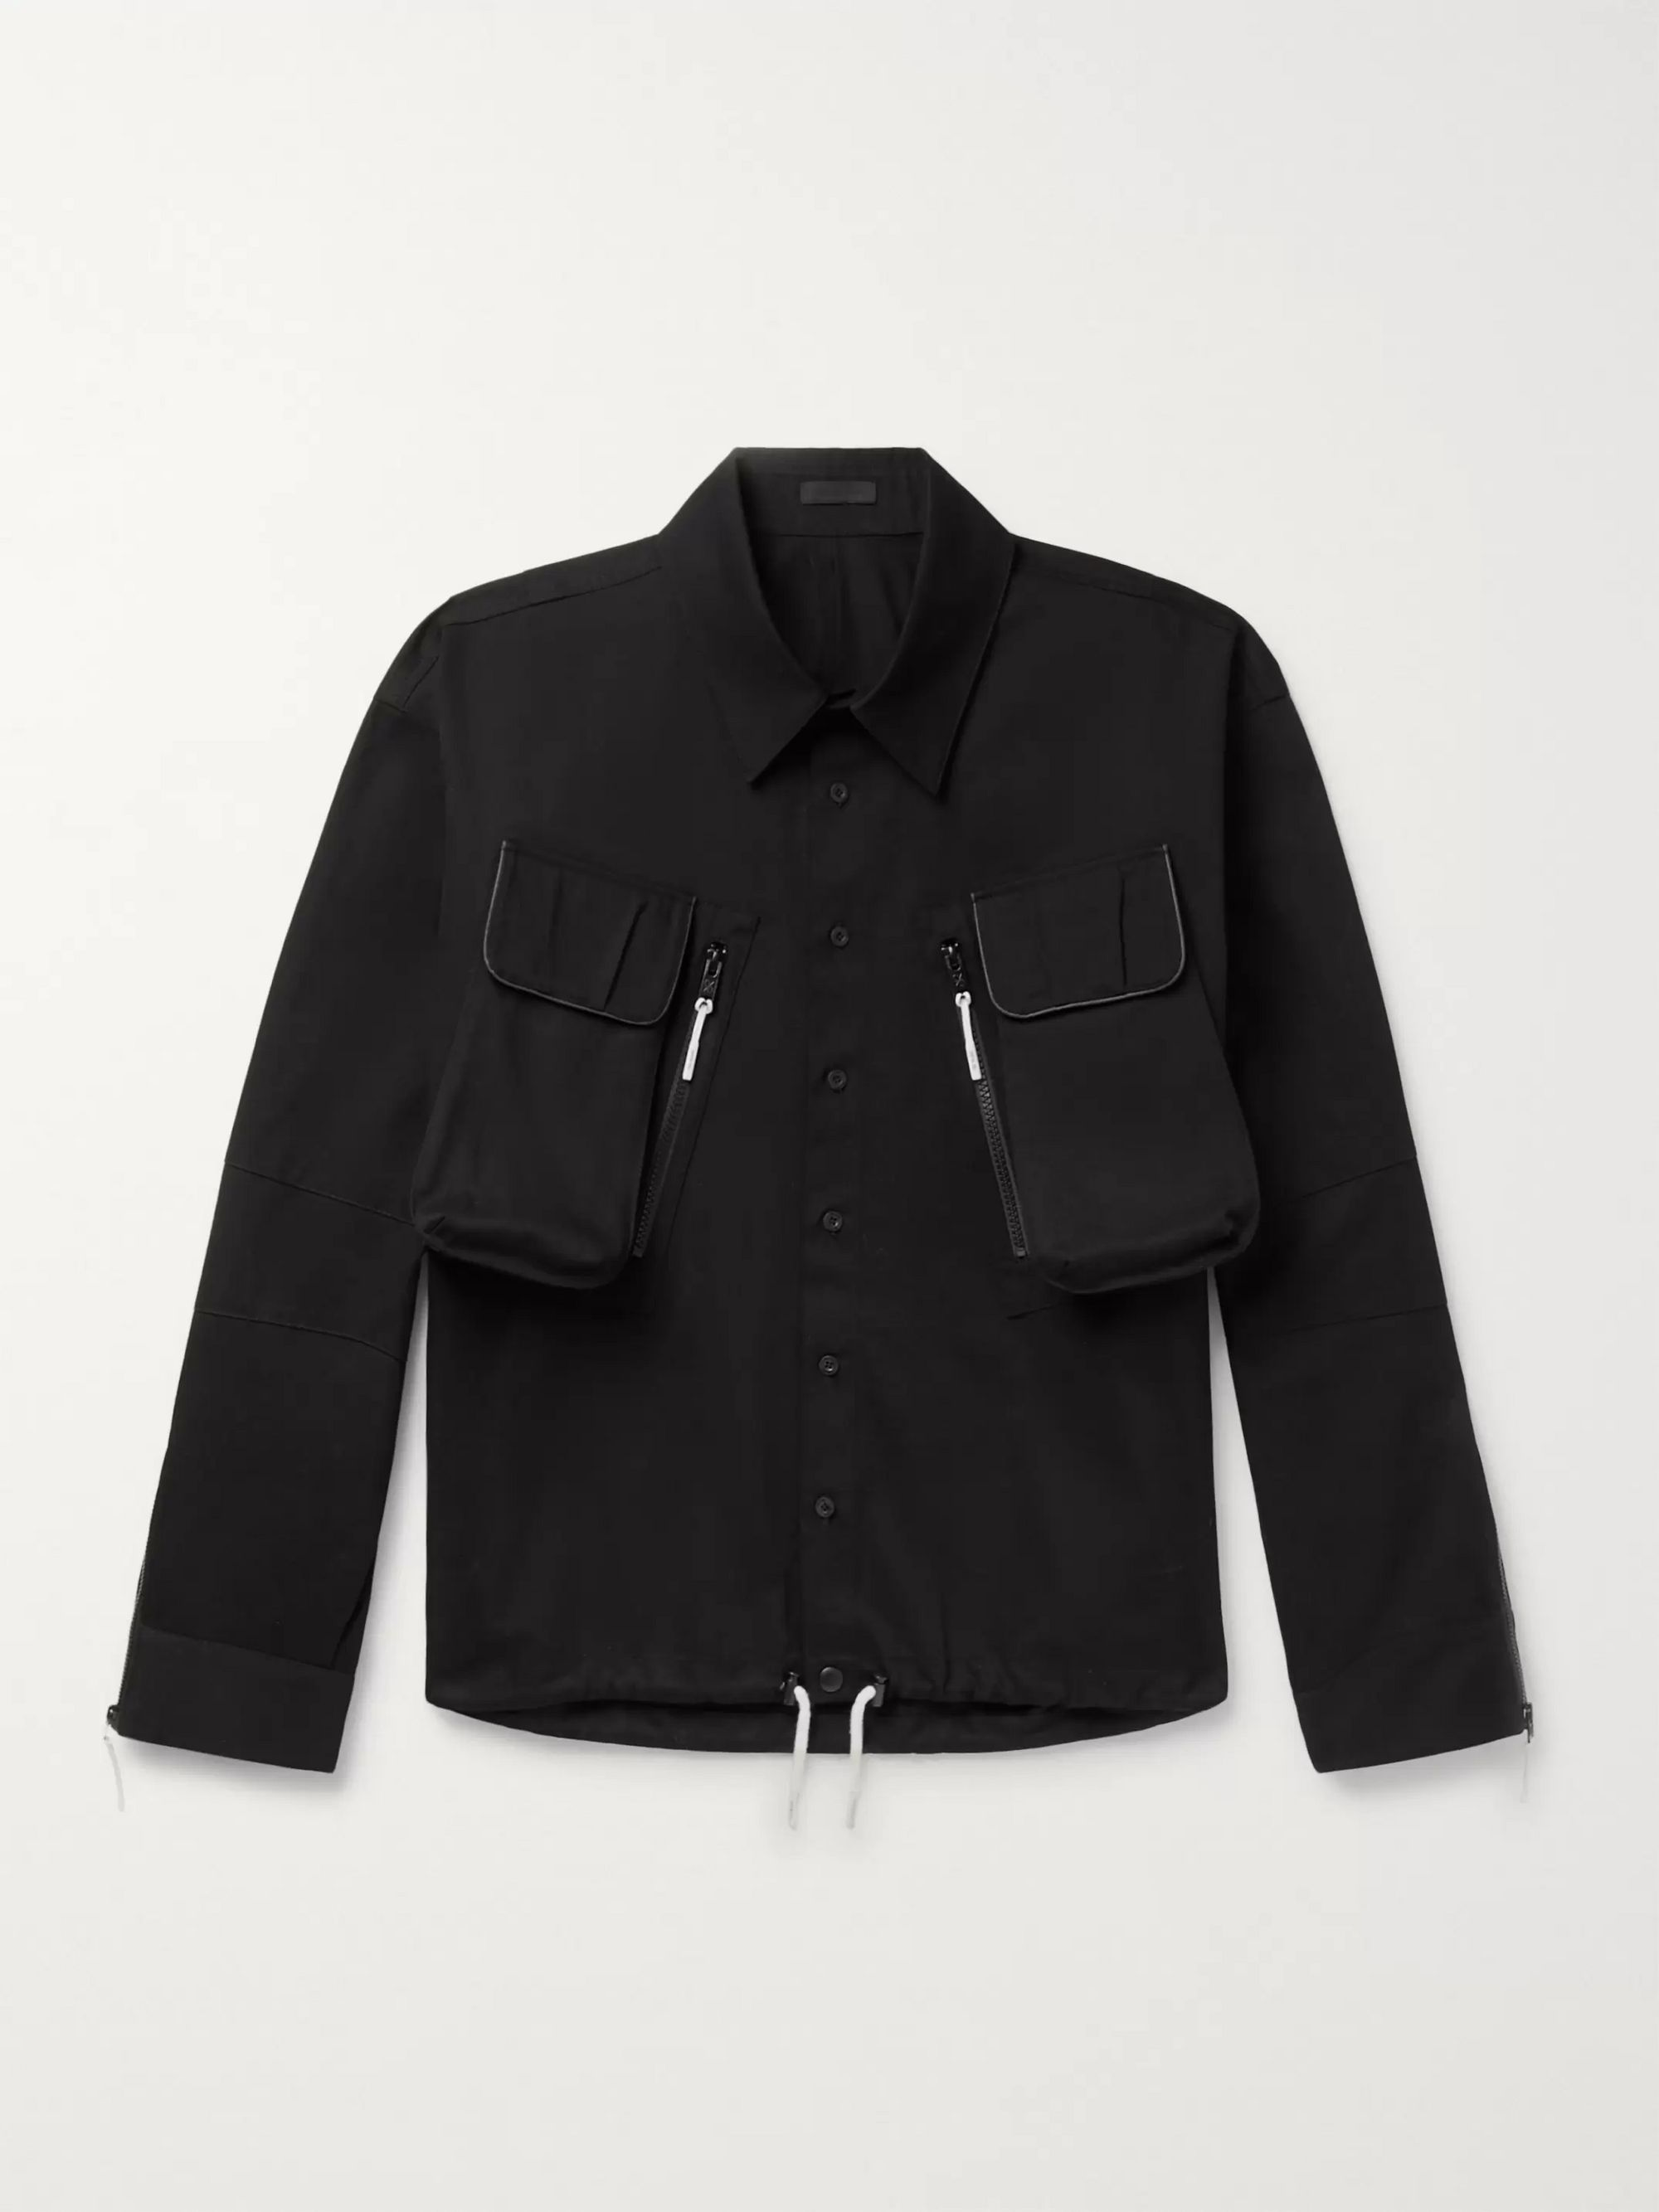 99%IS- Oversized Cotton-Twill Jacket